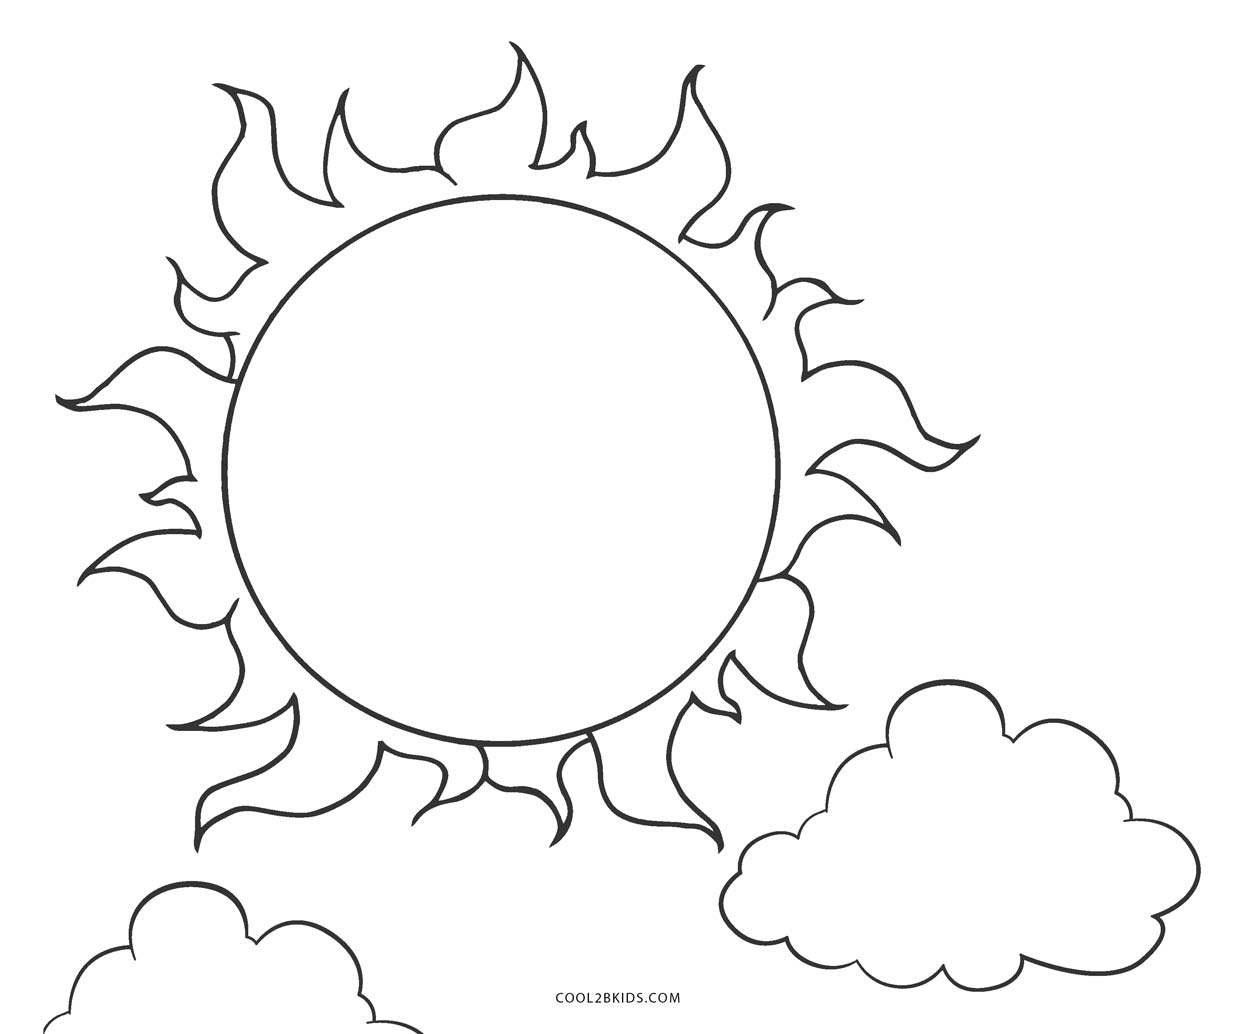 sun coloring for kids sun coloring pages to download and print for free kids sun for coloring